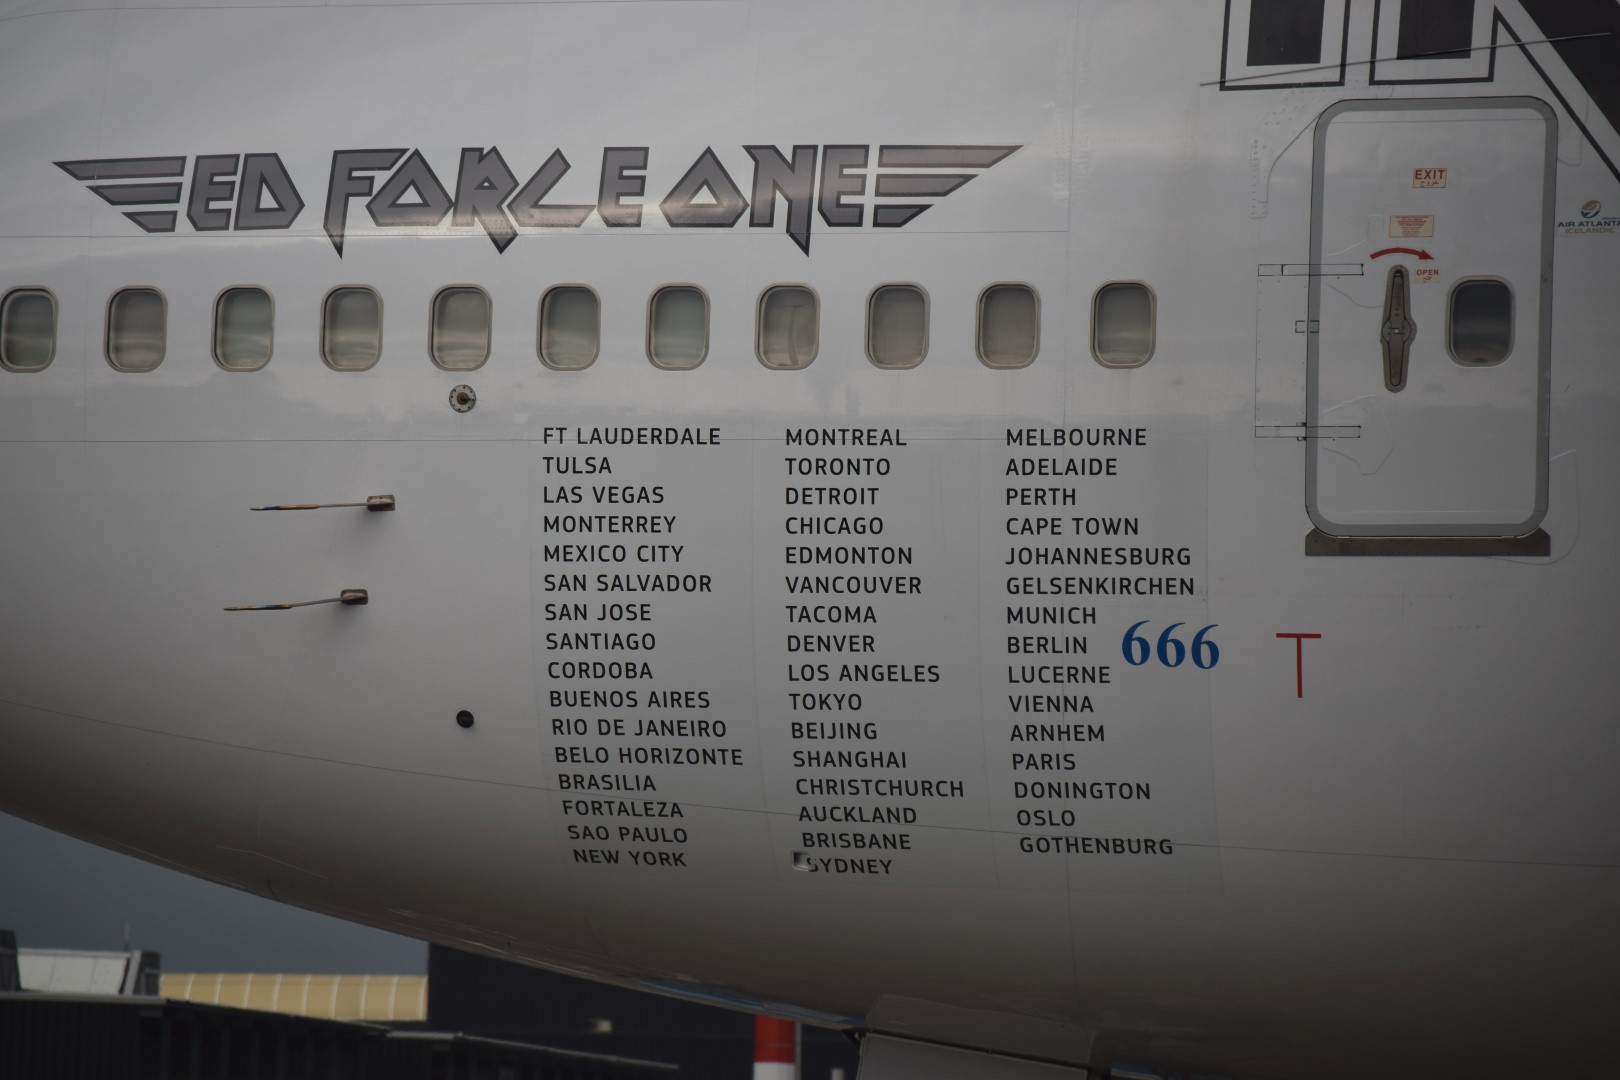 Iron Maiden - Ed Force One - Schiphol, Amsterdam (05)